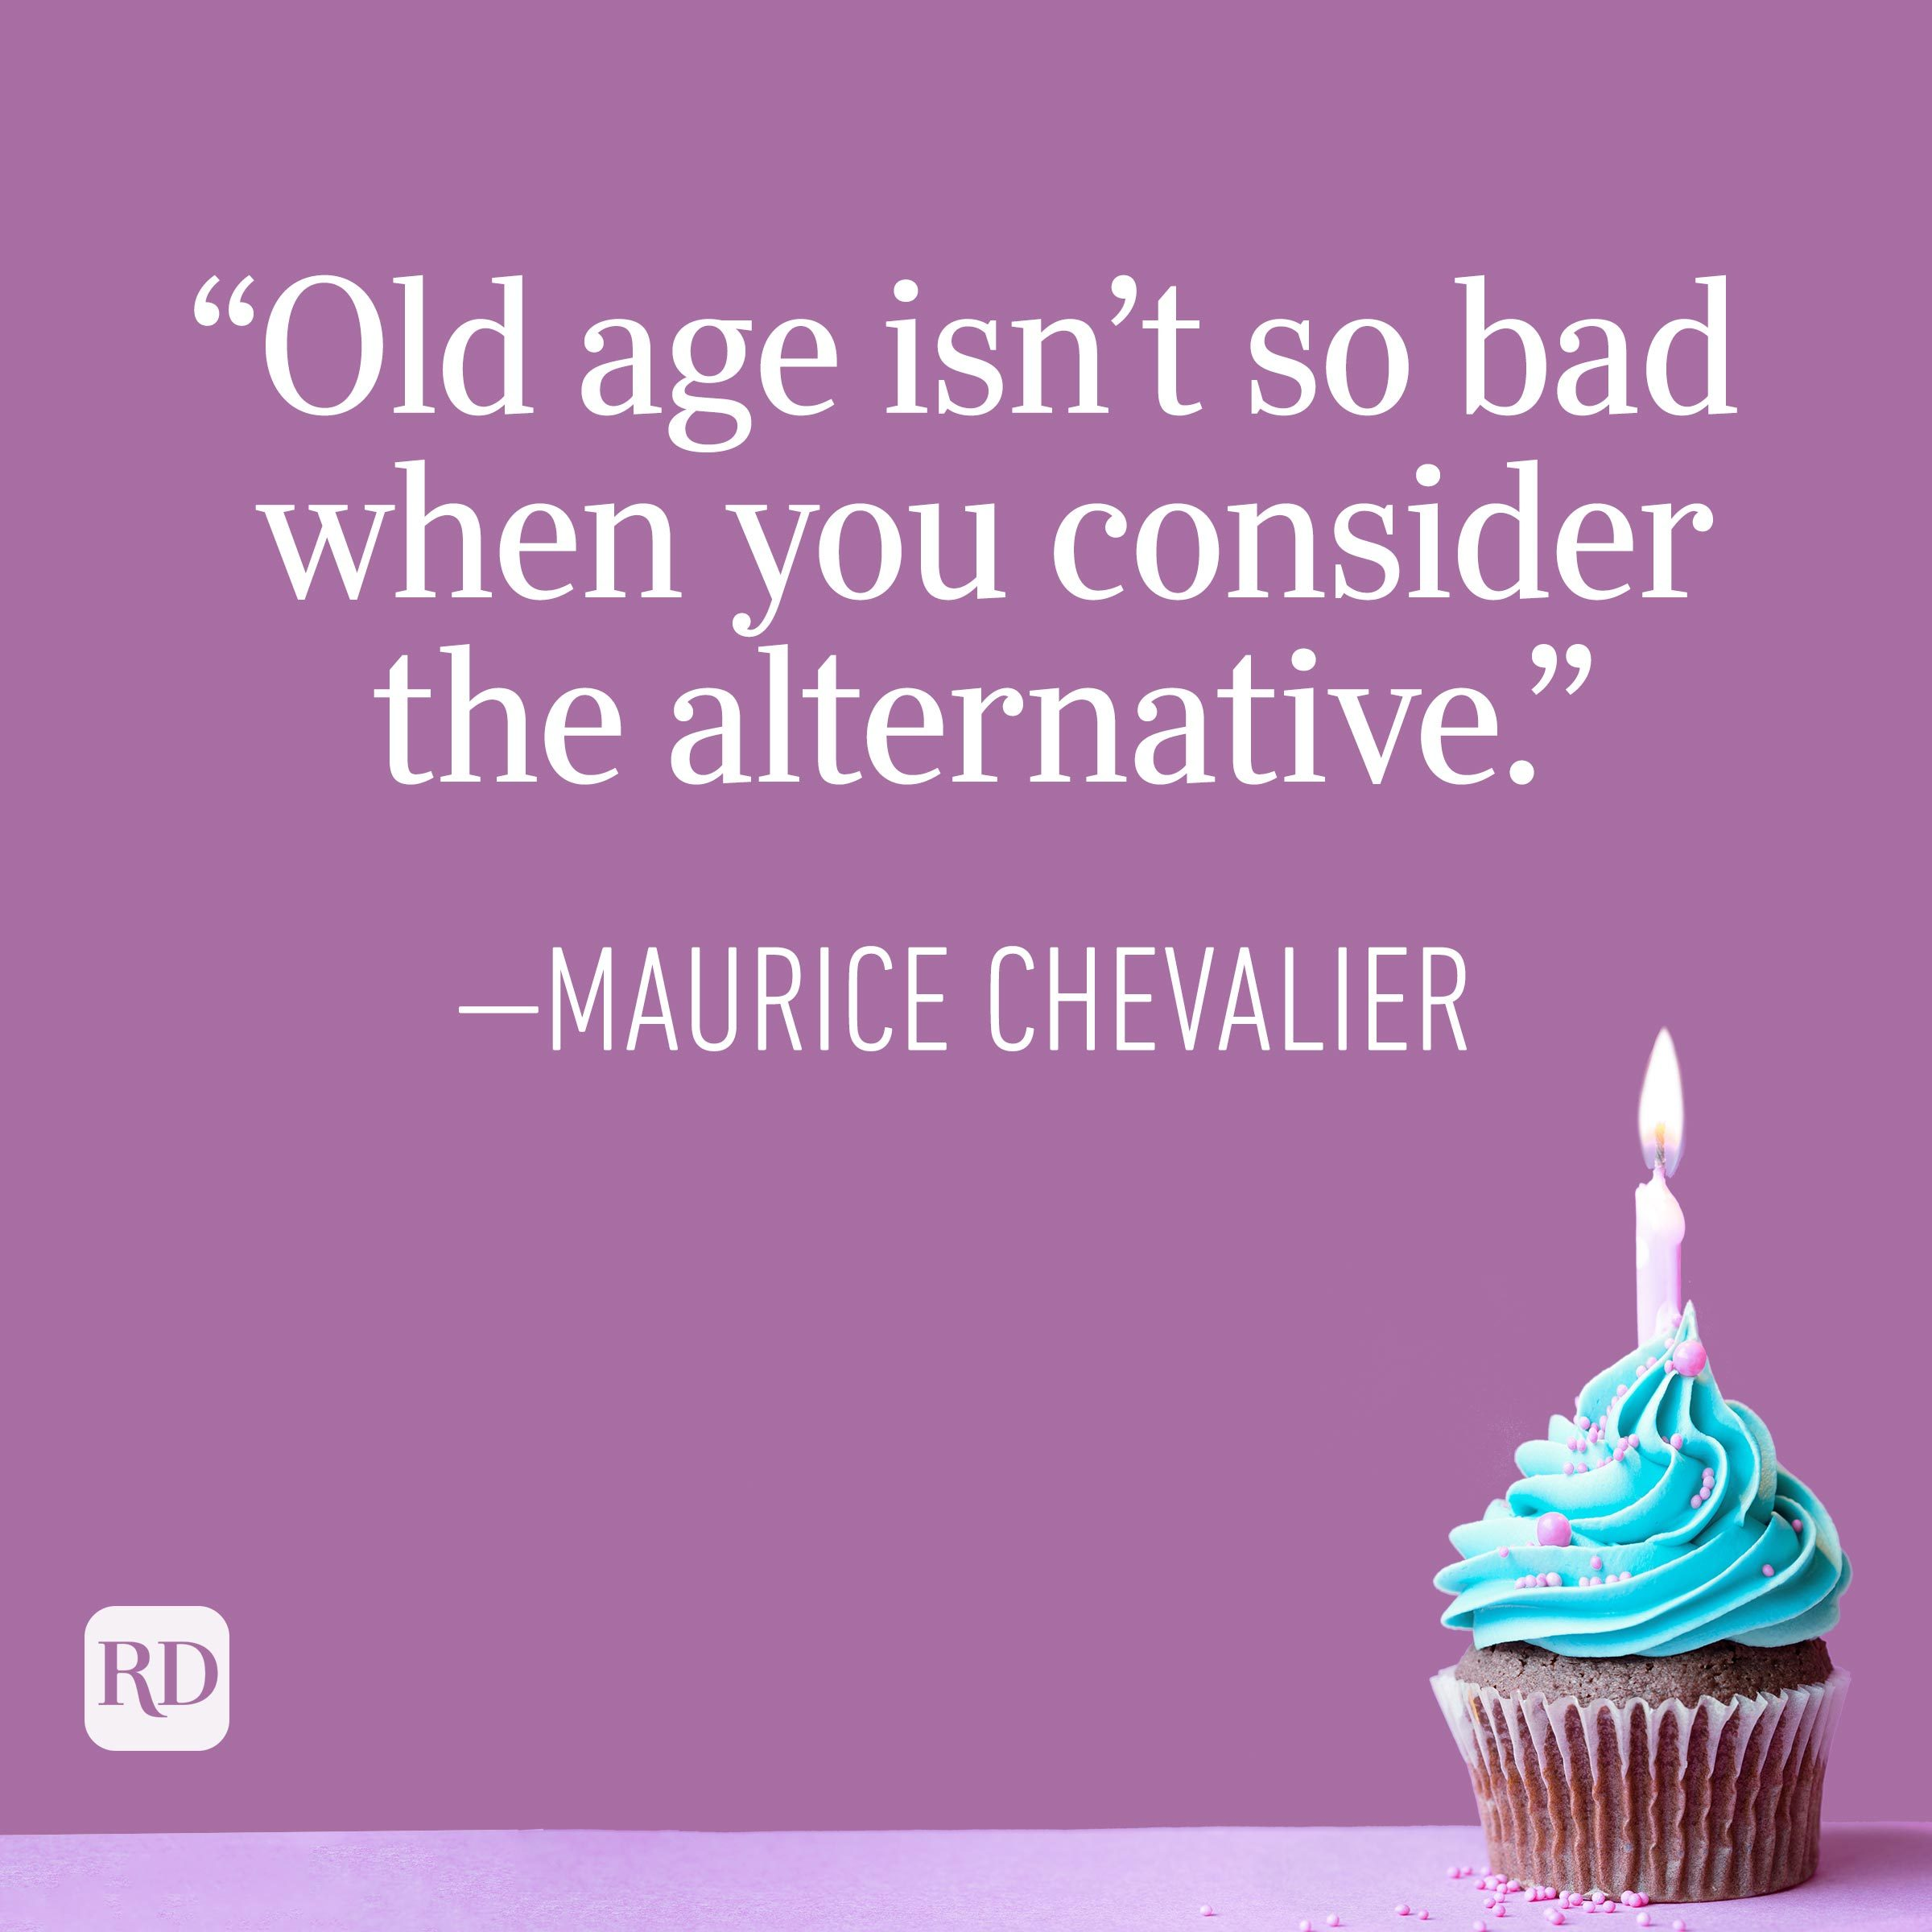 """""""Old age isn't so bad when you consider the alternative."""" —Maurice Chavelier"""